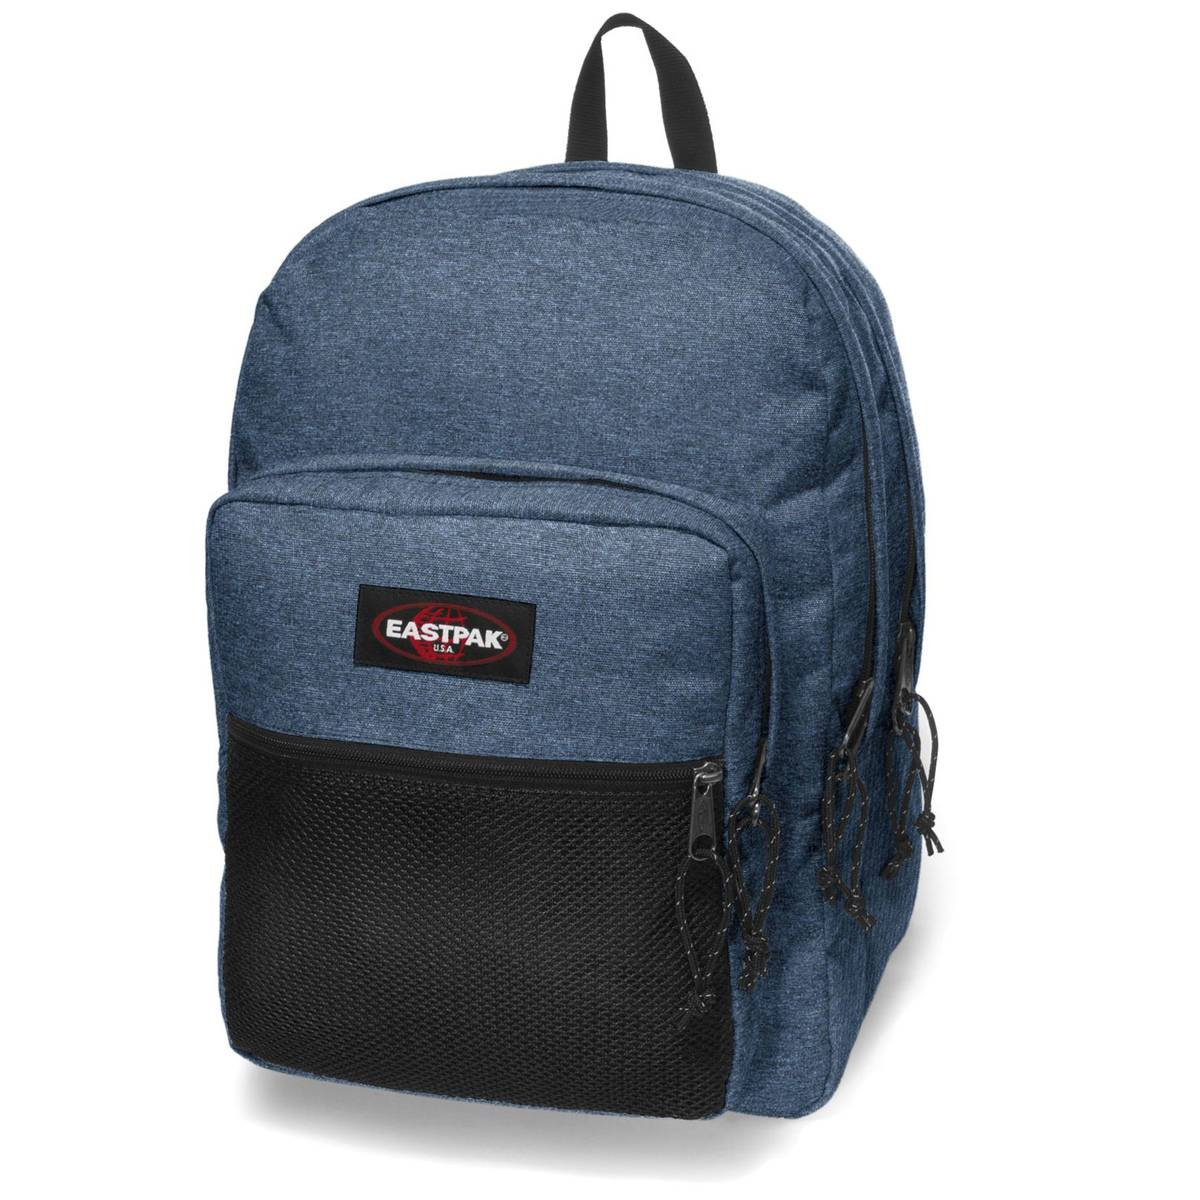 Eastpak ZAINO PINNACLE blu DOUBLE DENIM